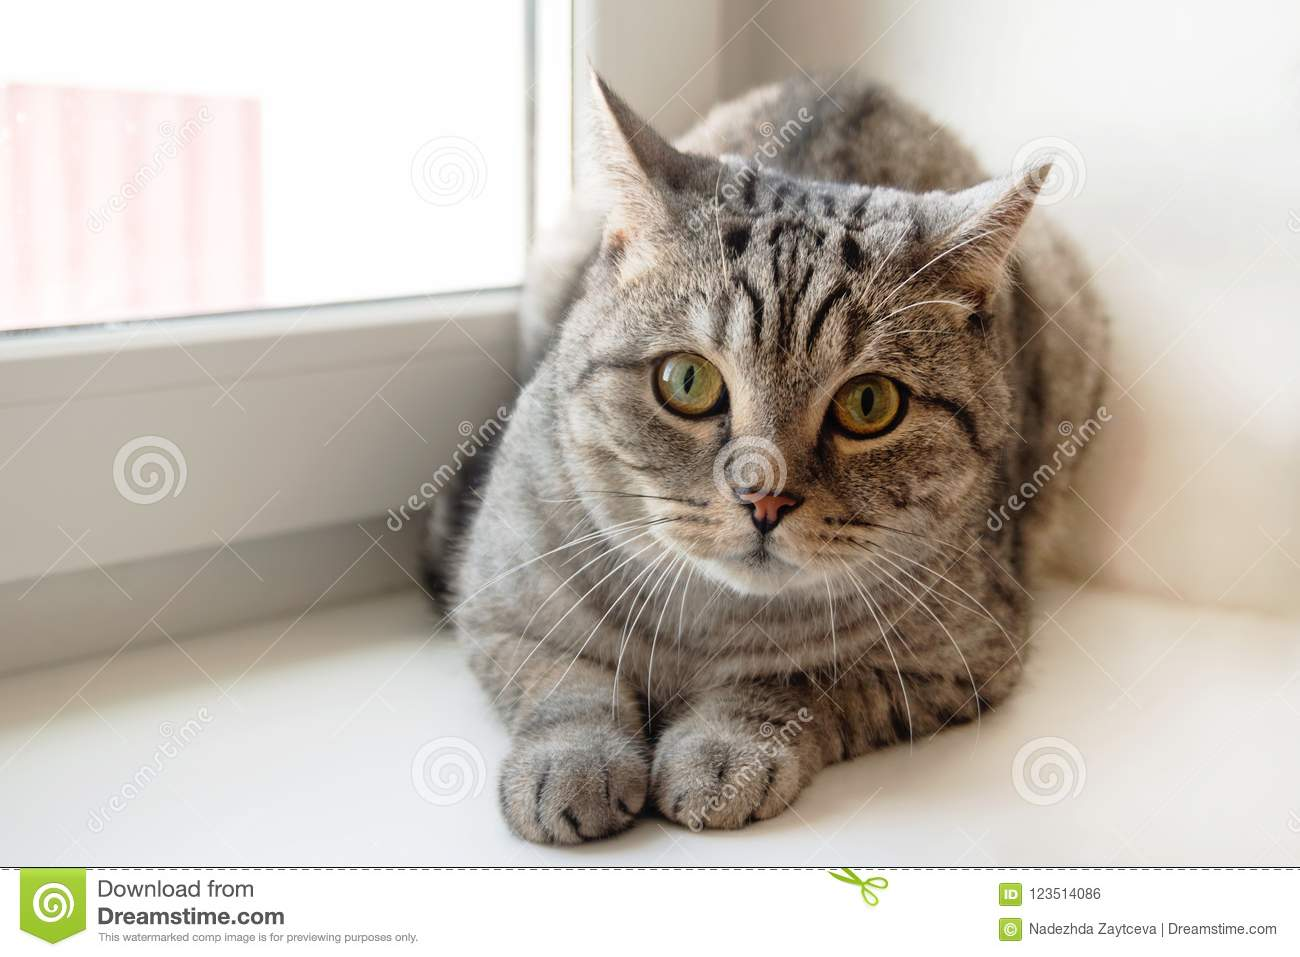 Fluffy gray tabby cat with green eyes is sitting near to the window.